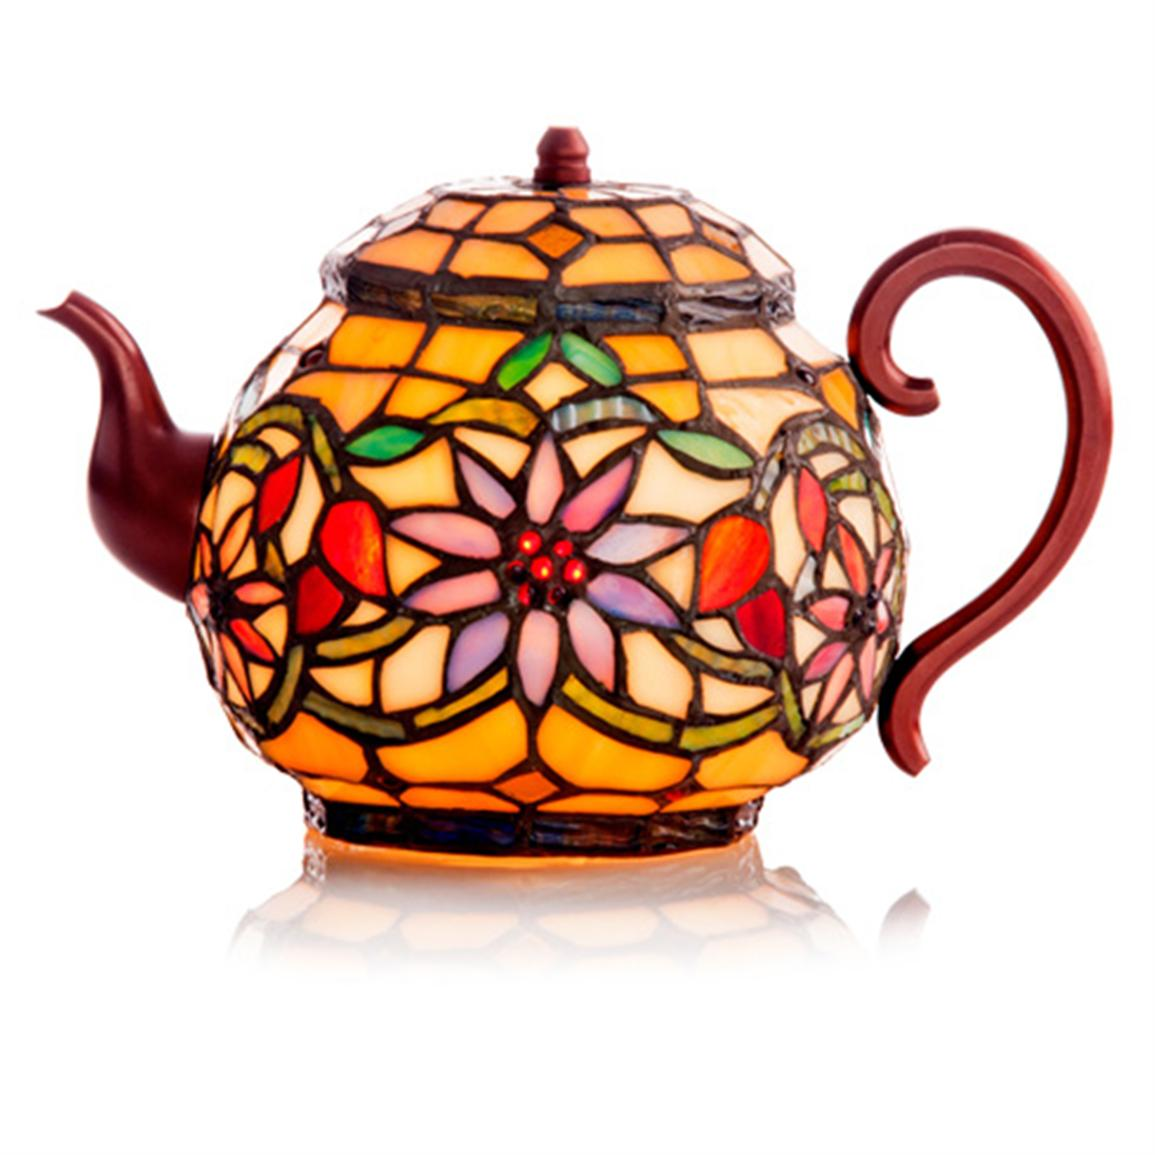 River of Goods Tiffany Teapot Accent Lamp